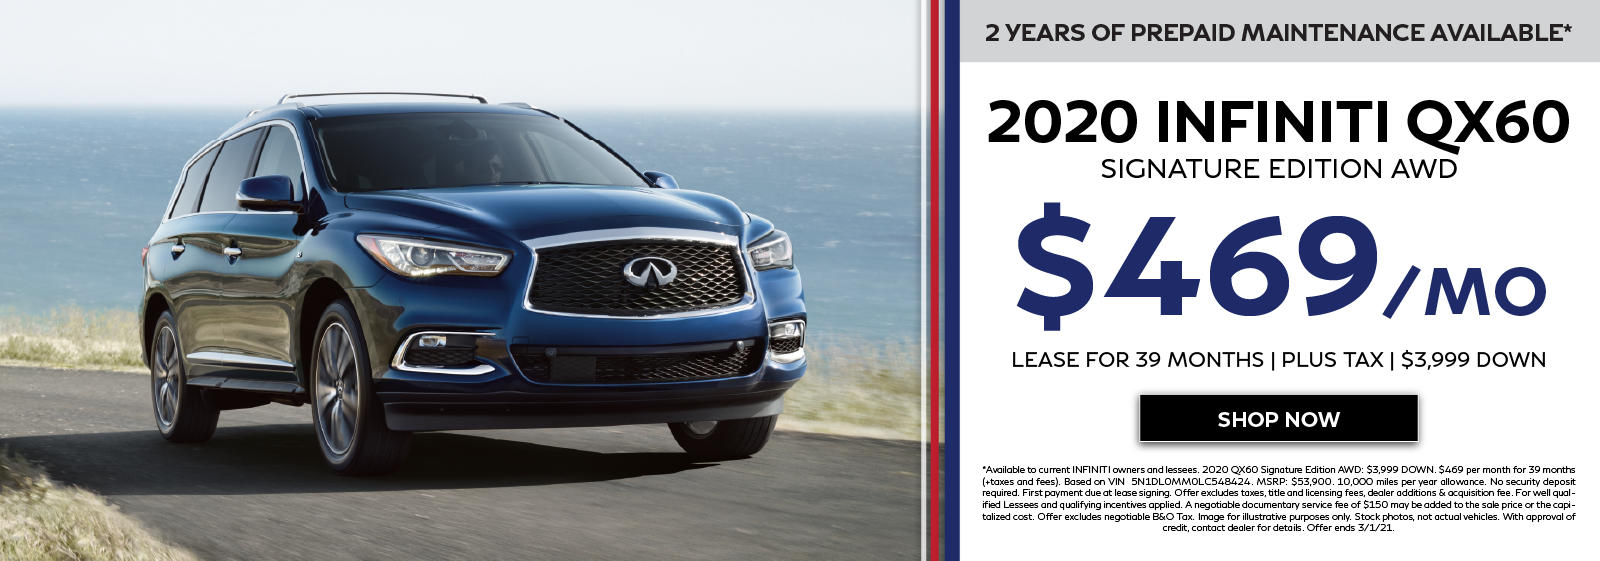 2020 QX60 Signature Edition AWD Offers. Click to shop now.